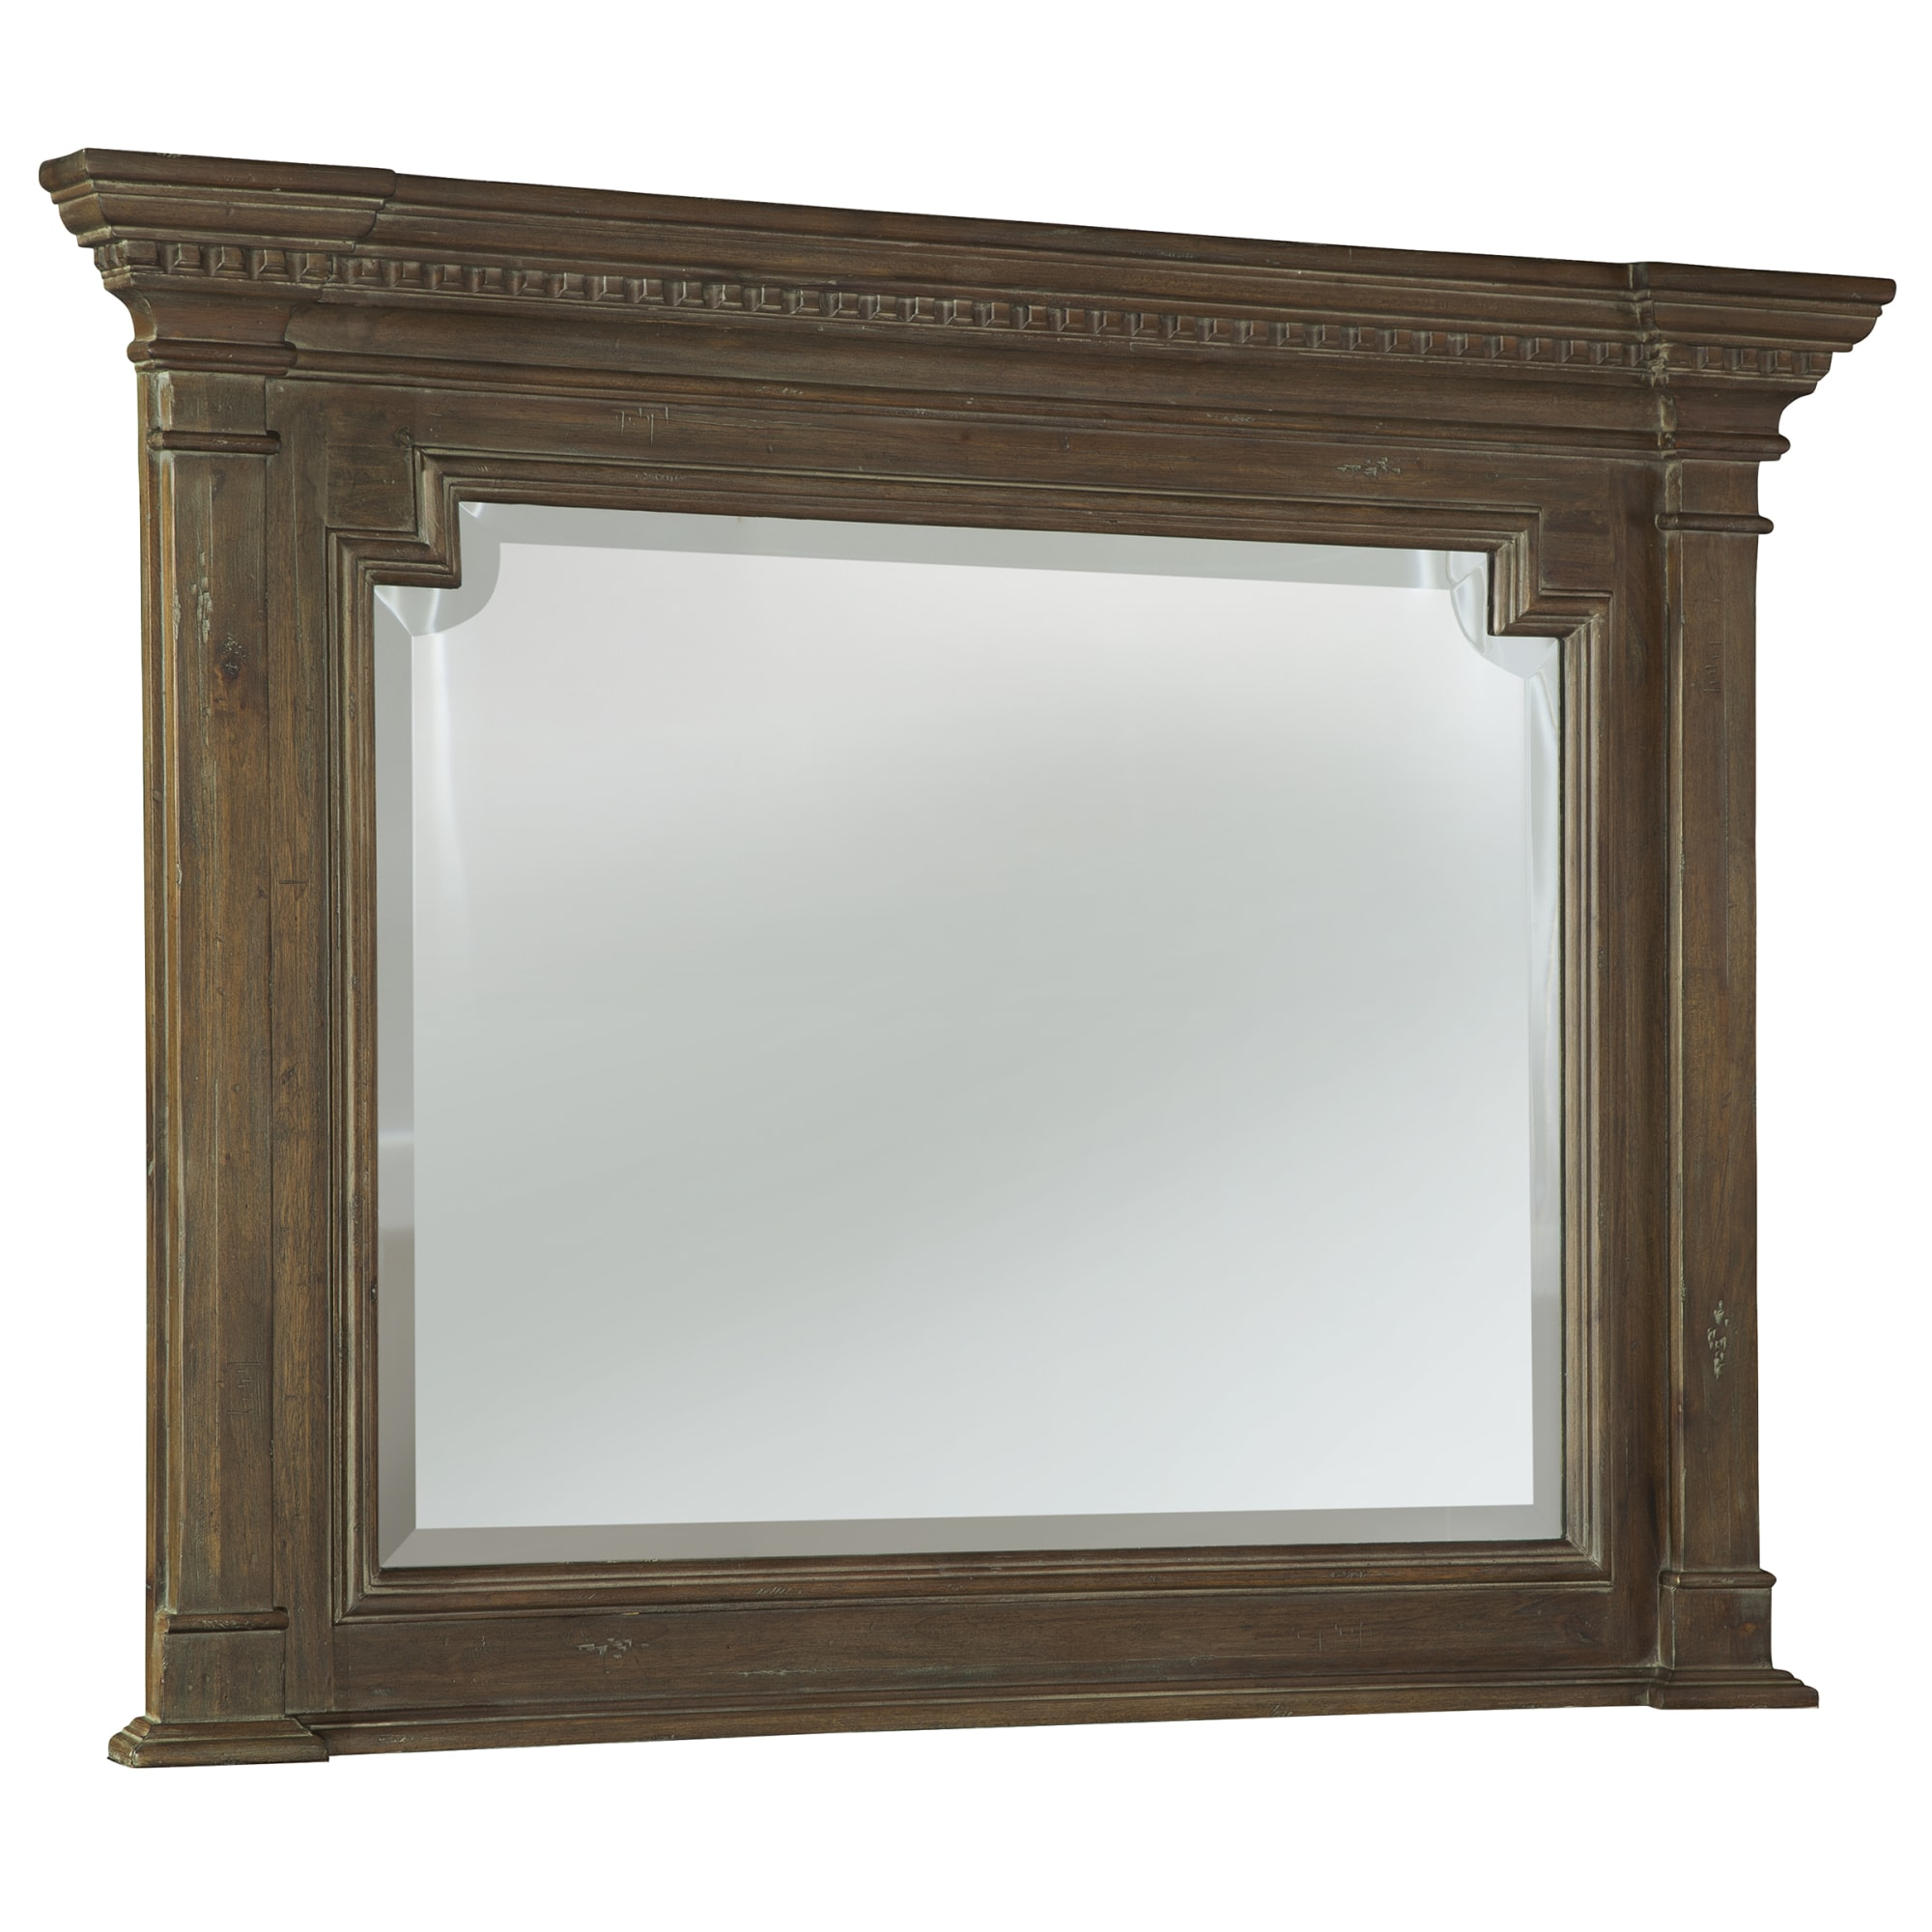 Image for 1-9267 Turtle Creek Mirror from Hekman Official Website